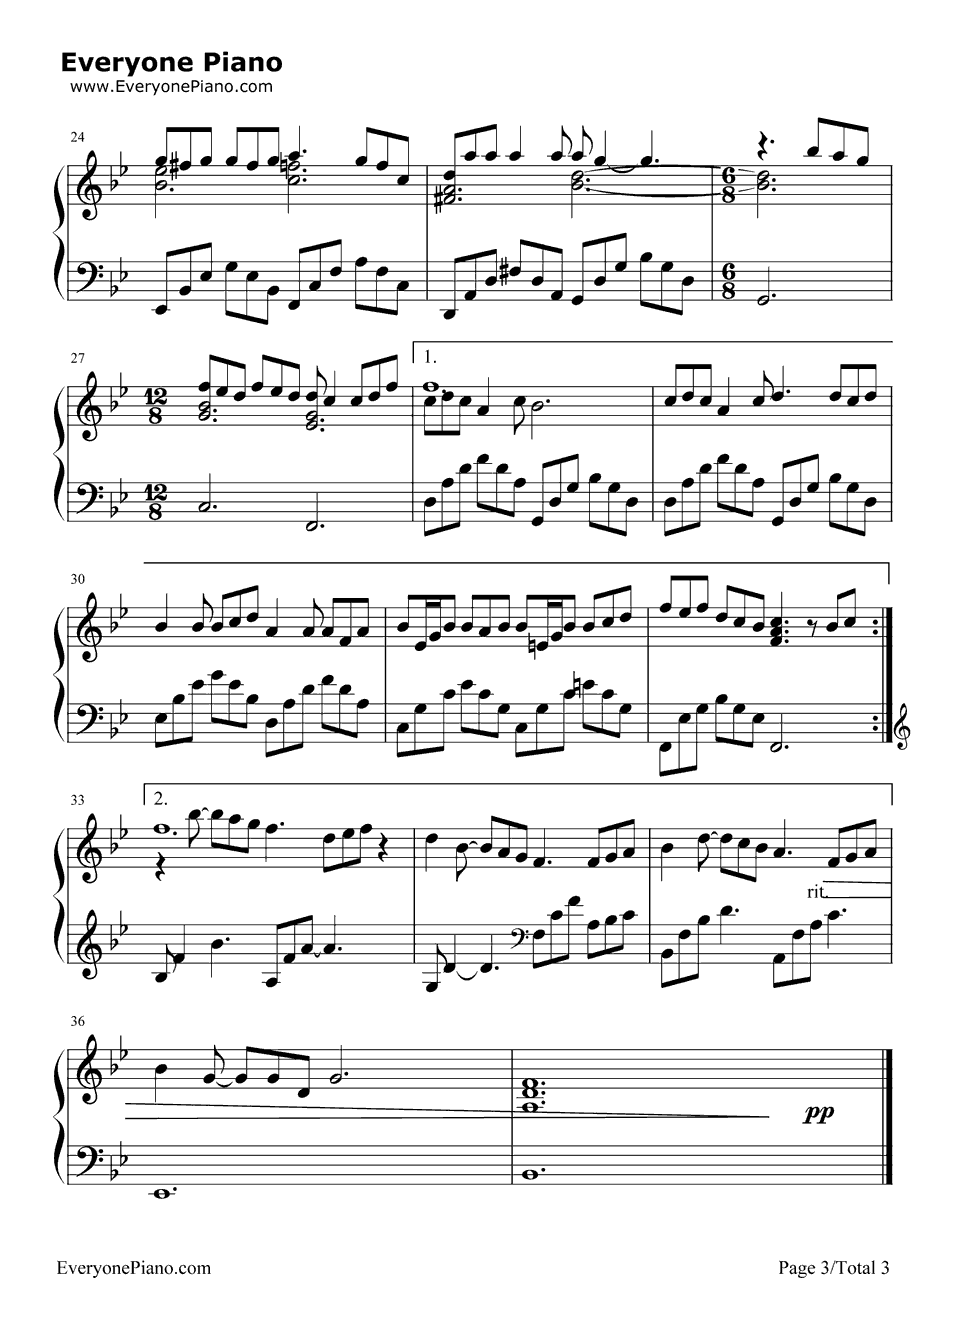 She is love parachute piano sheet music free piano ideas kiss me slowly parachute free piano sheet music chords parachute sammi cheng stave preview 3 free piano sheet music hexwebz Images